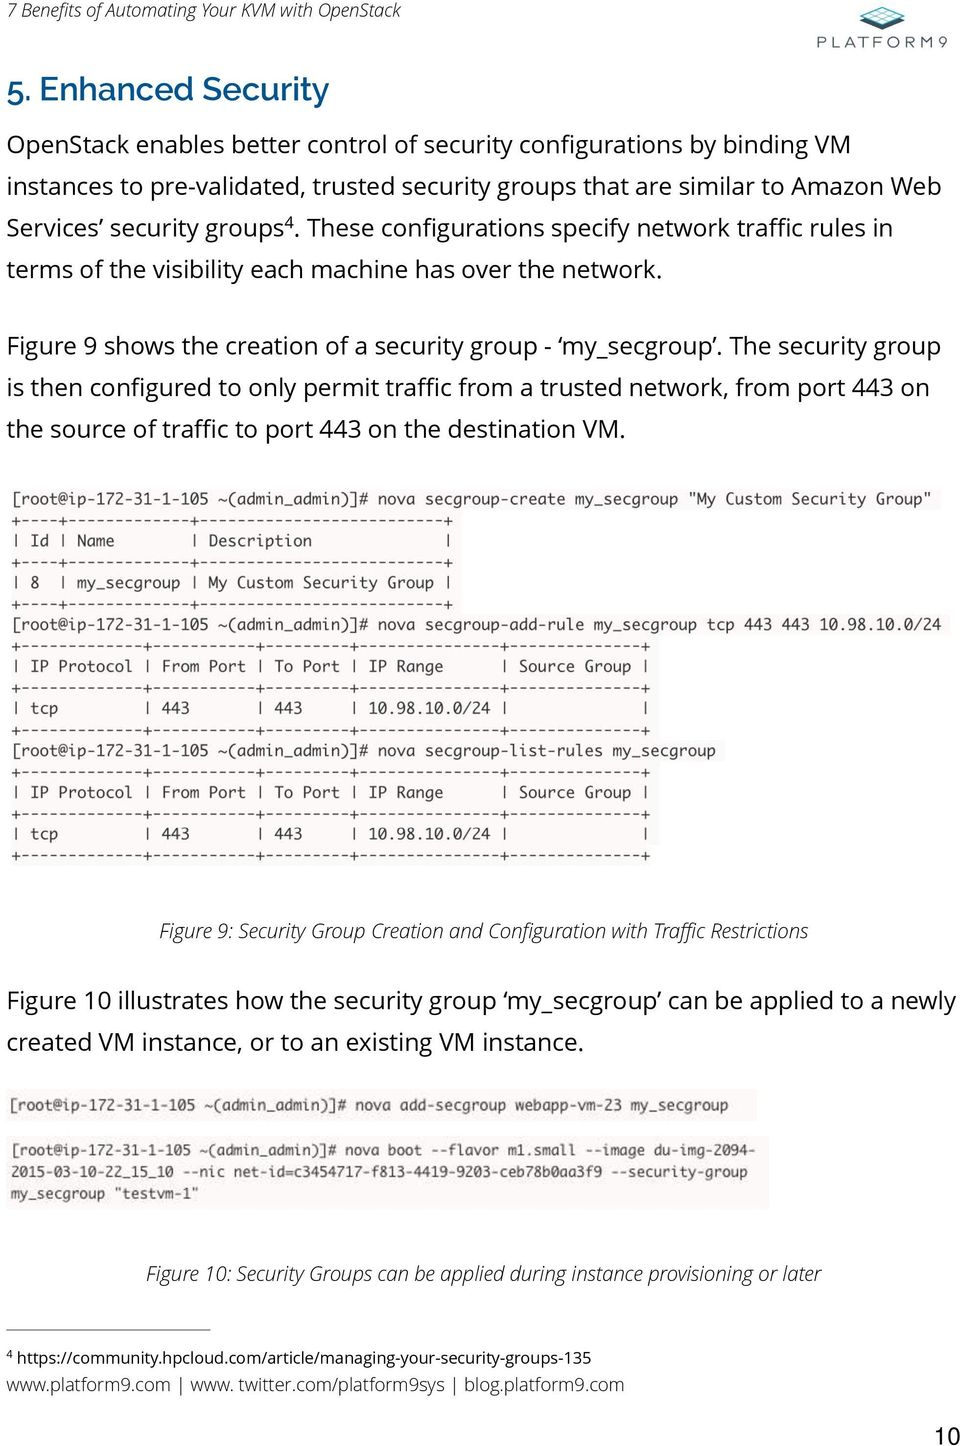 The security group is then configured to only permit traffic from a trusted network, from port 443 on the source of traffic to port 443 on the destination VM.